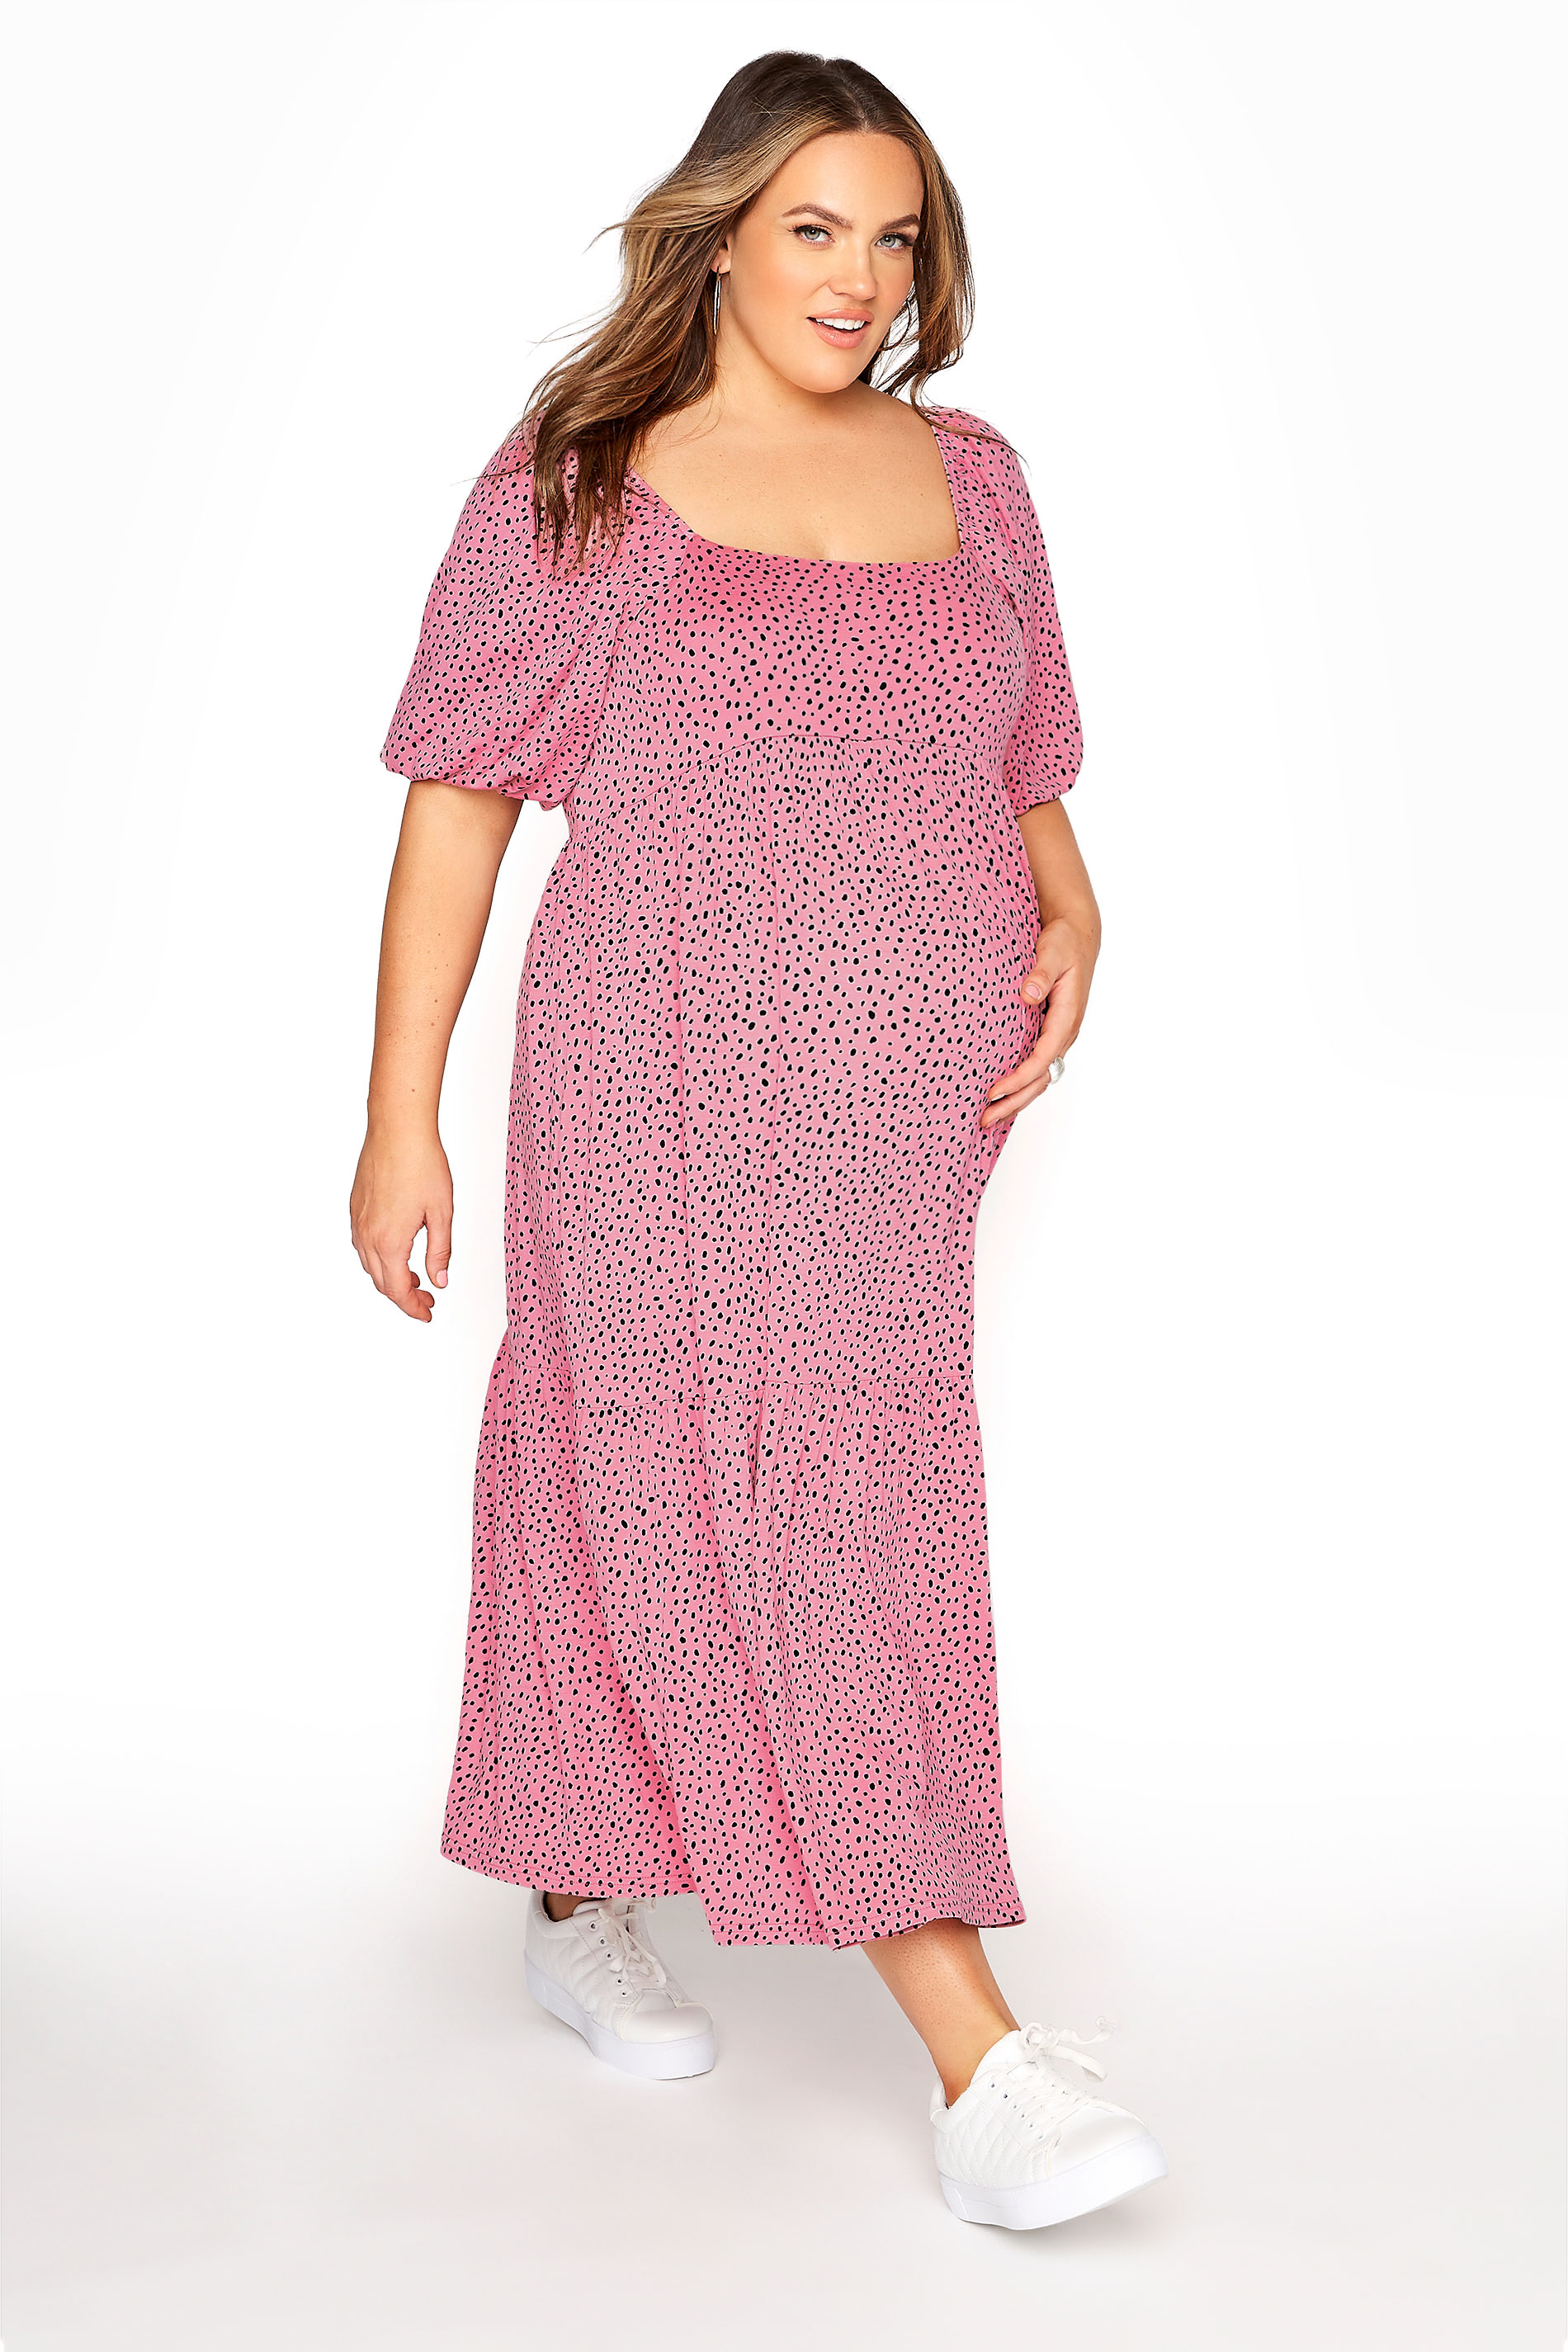 BUMP IT UP MATERNITY Pink Square Neck Midaxi Dress_A.jpg